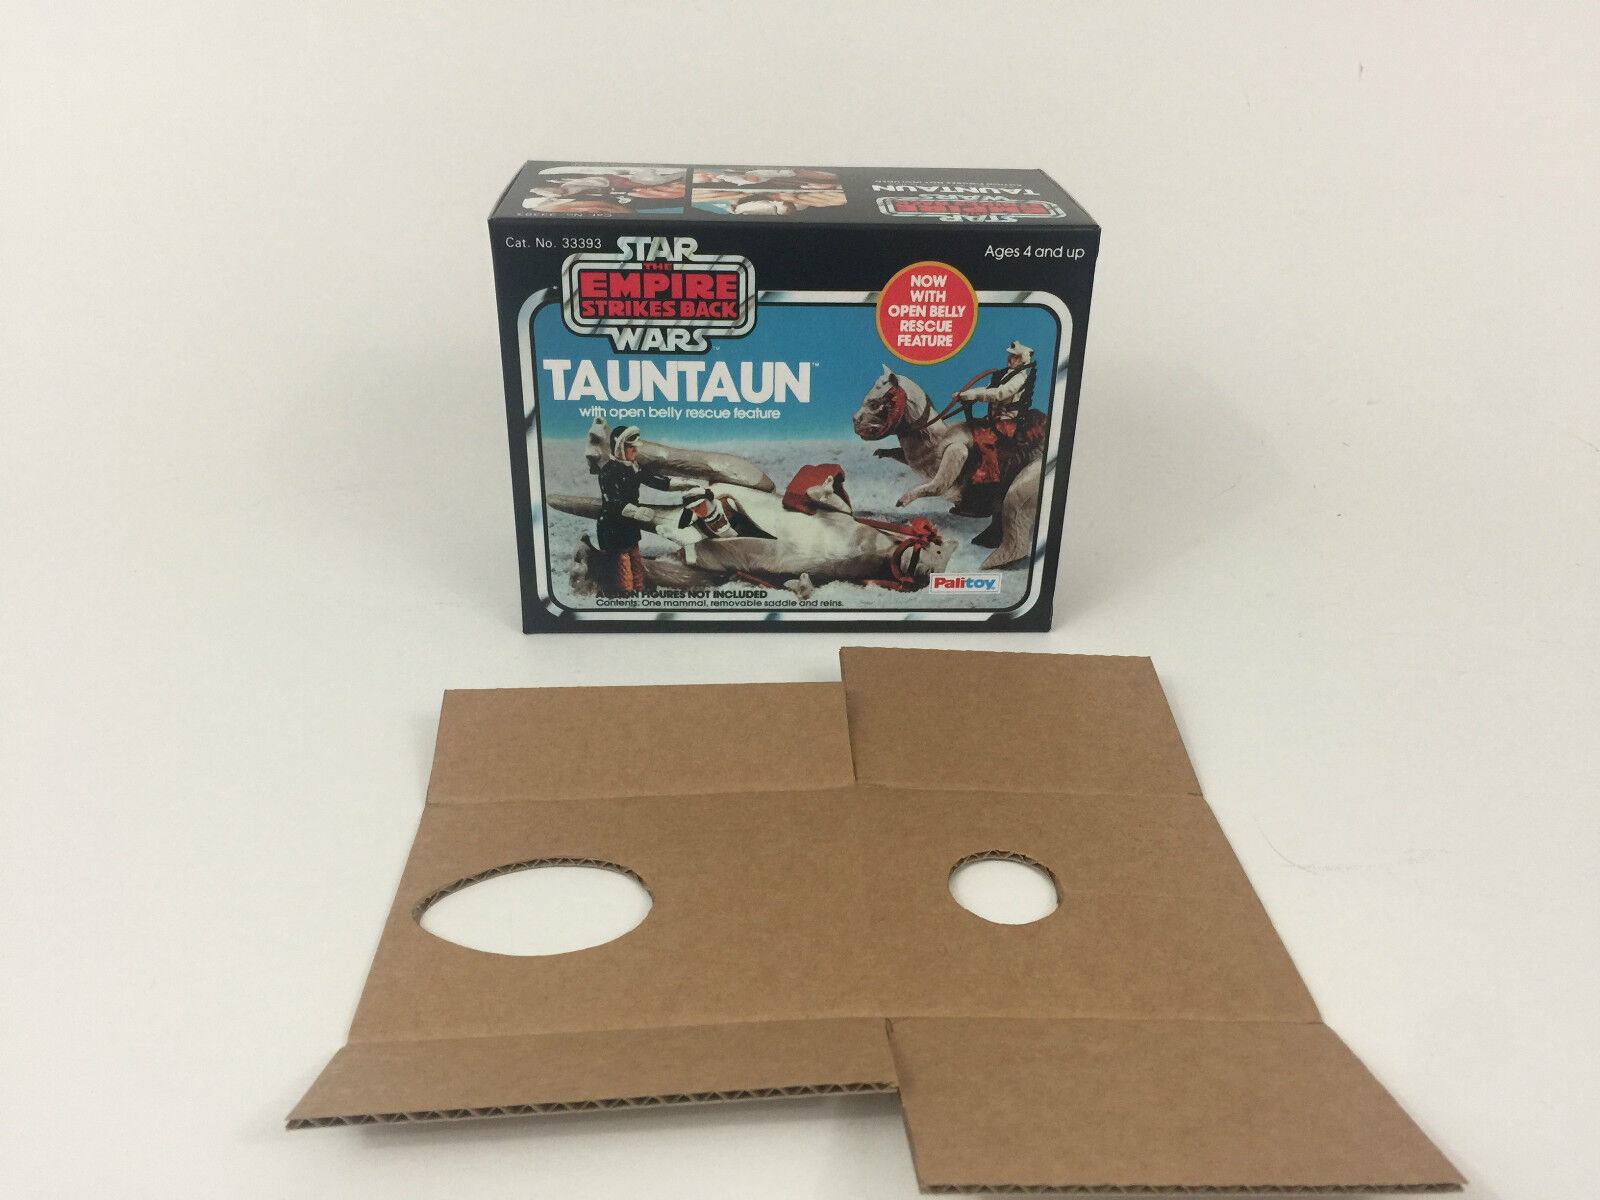 Replacement vintage star wars esb palitoy open belly tauntaun box + inserts